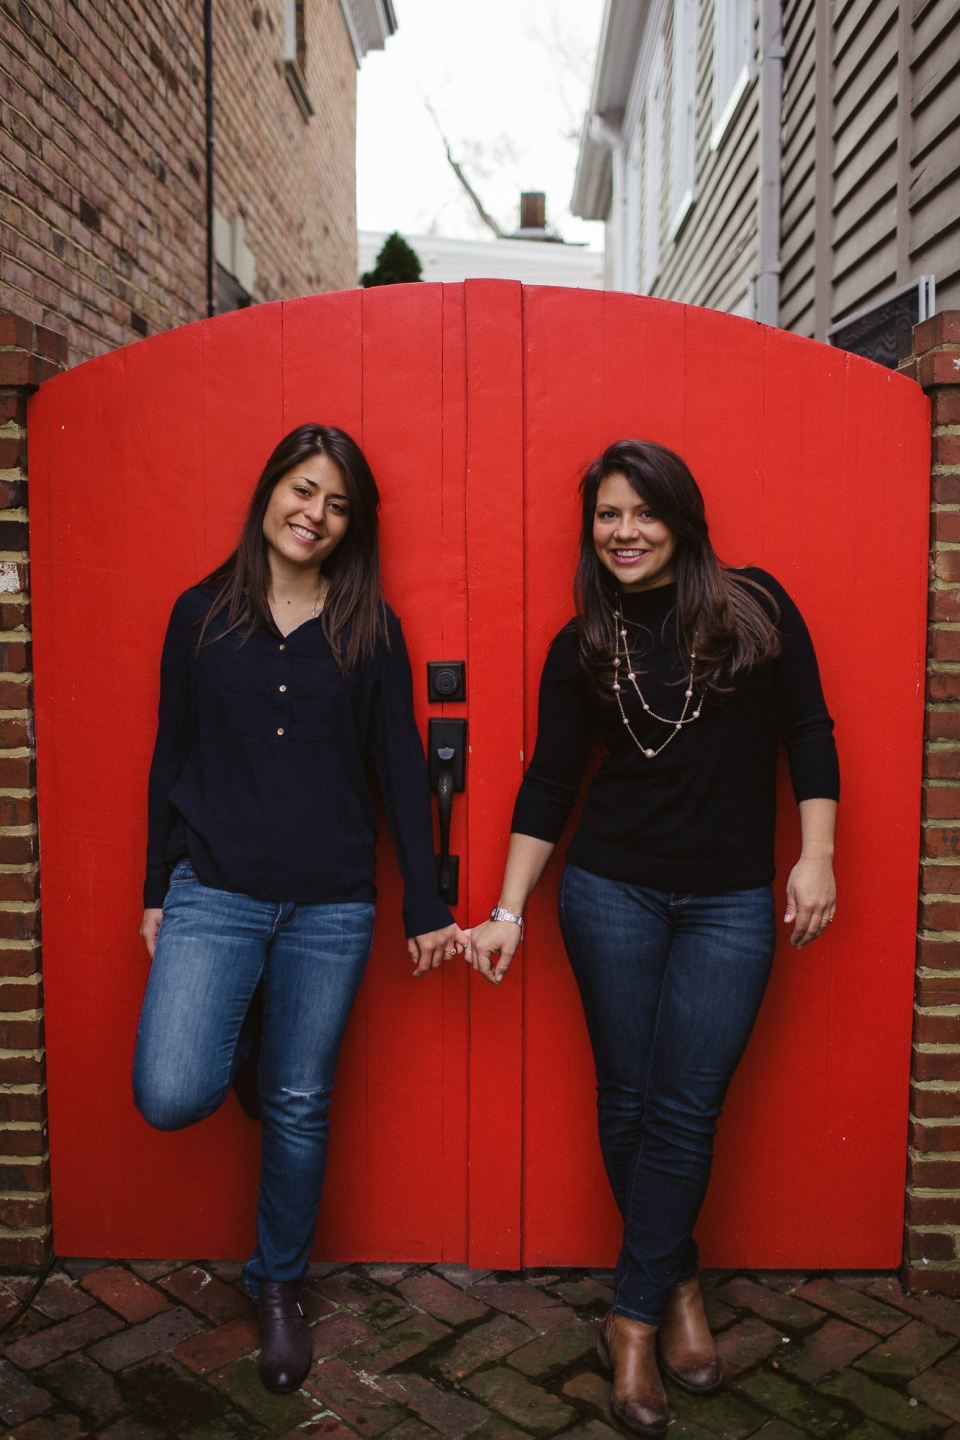 Two smiling young adult females in black sweaters and jeans stand against a bright red gate, with their pinky fingers interlocking.